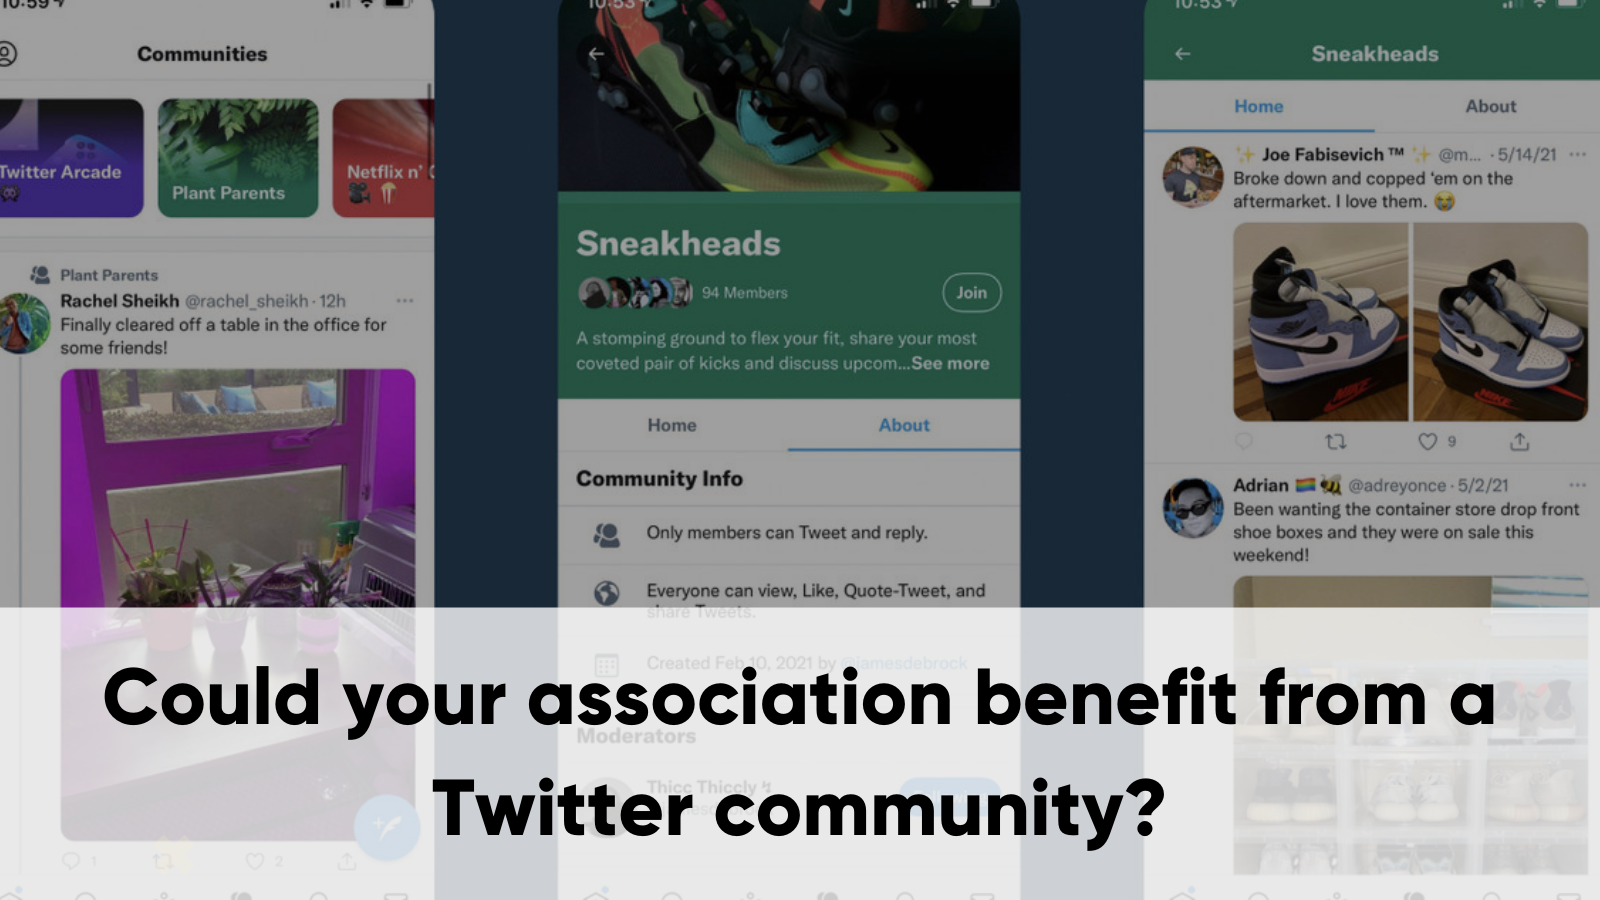 Could Your Association Benefit From A Twitter Community?